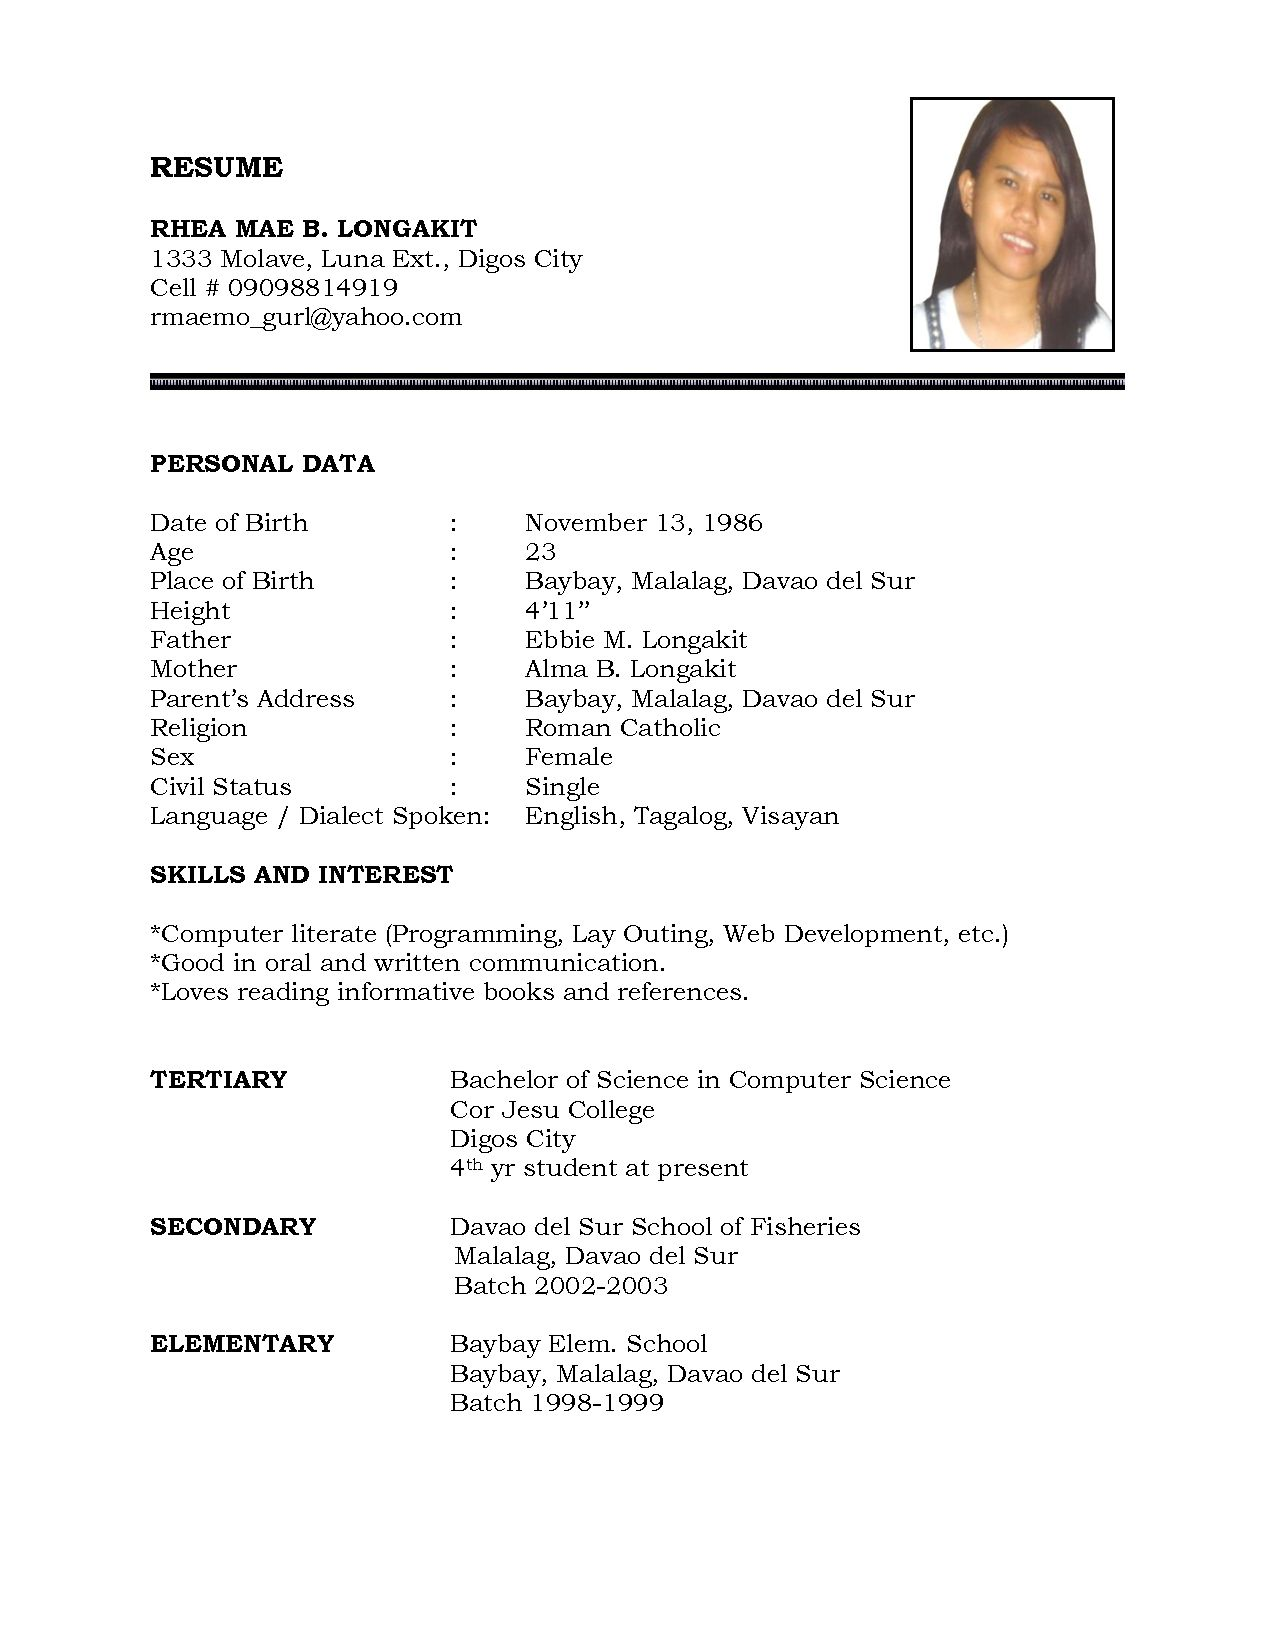 rusume sample - Sample Resume Teacher Malaysia